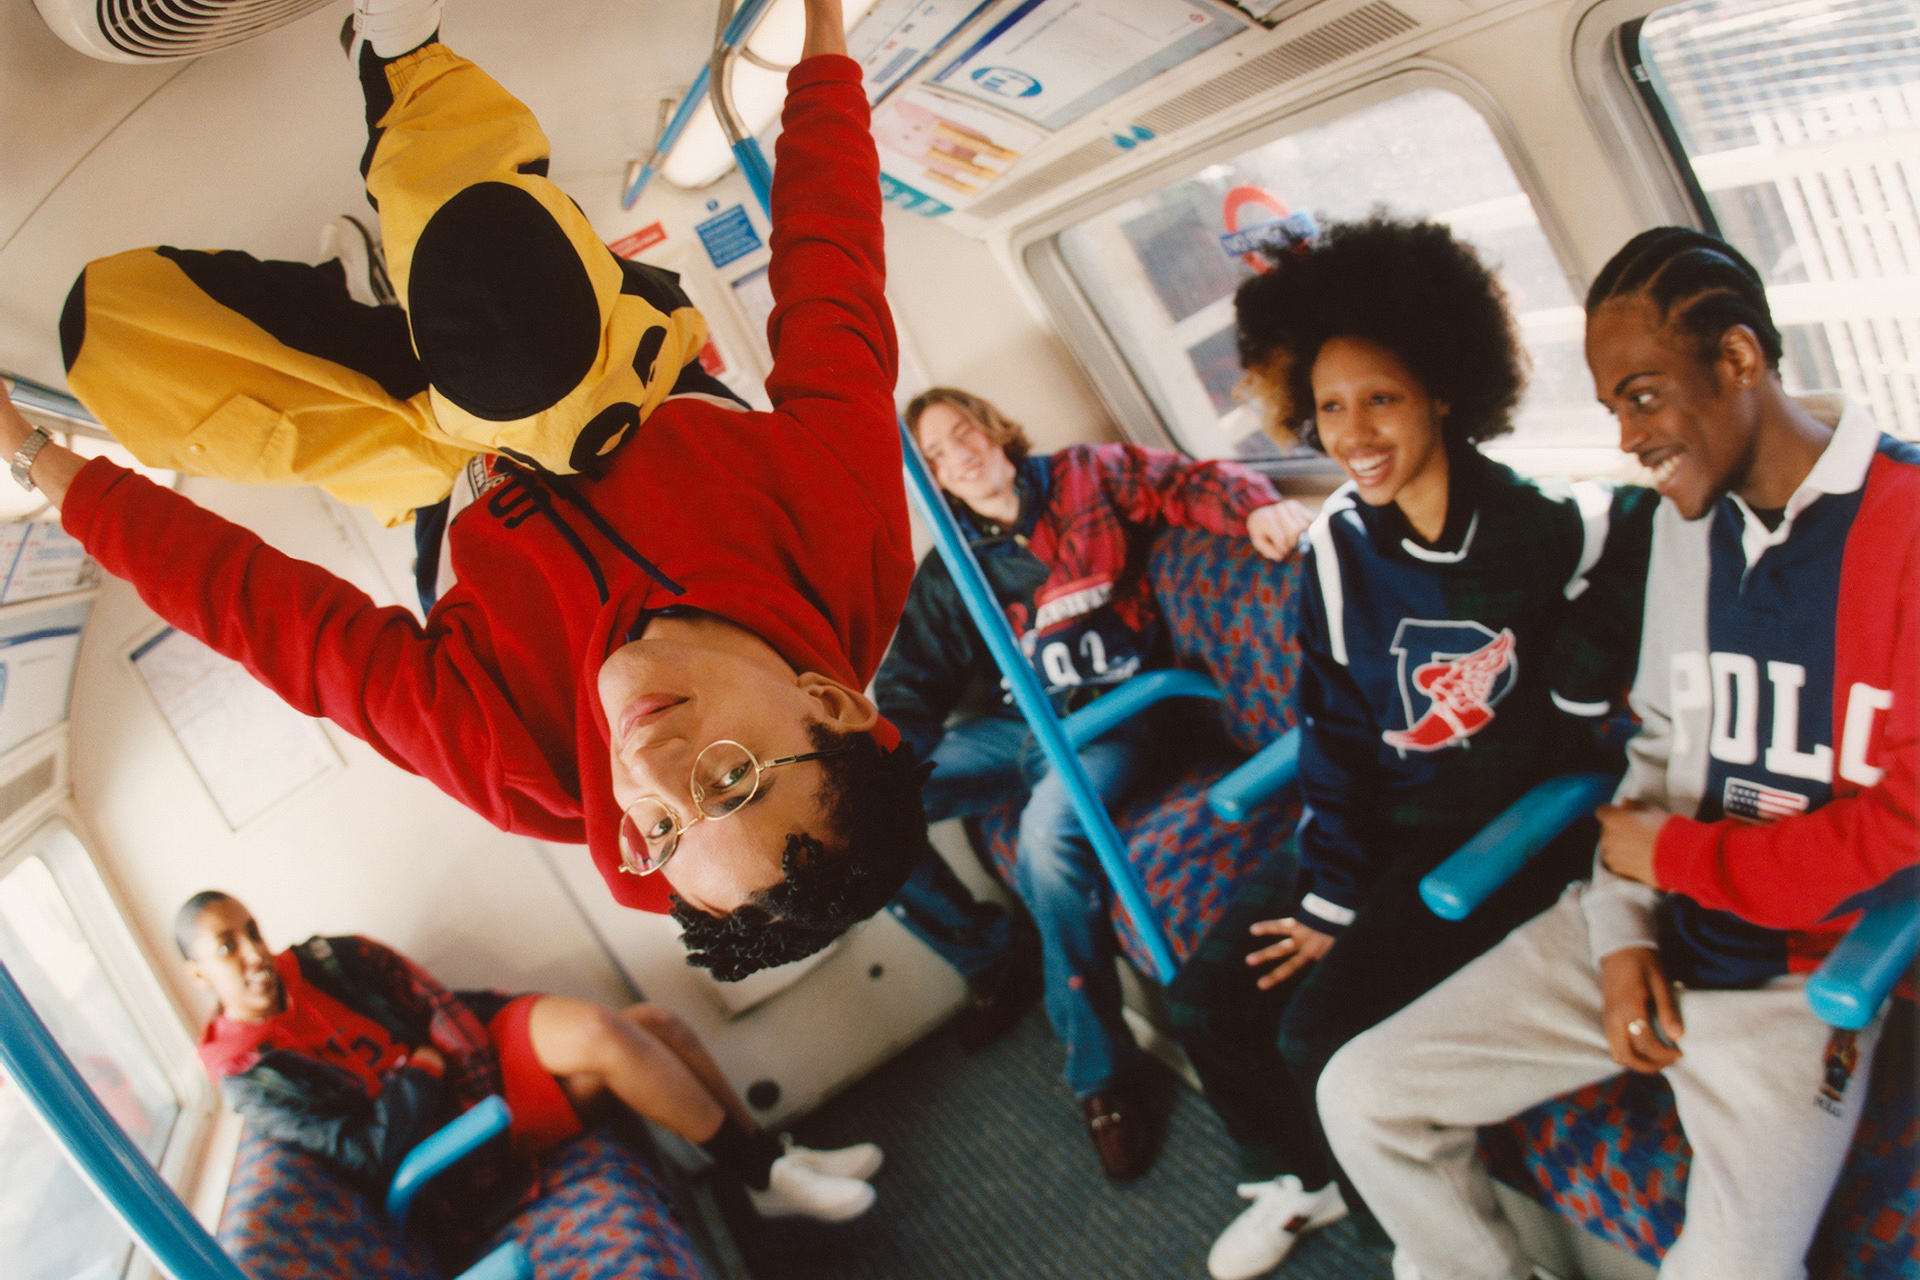 Image of a group of young models sat in a London underground carriage, wearing bright, Browns-exclusive Polo Ralph Lauren garments